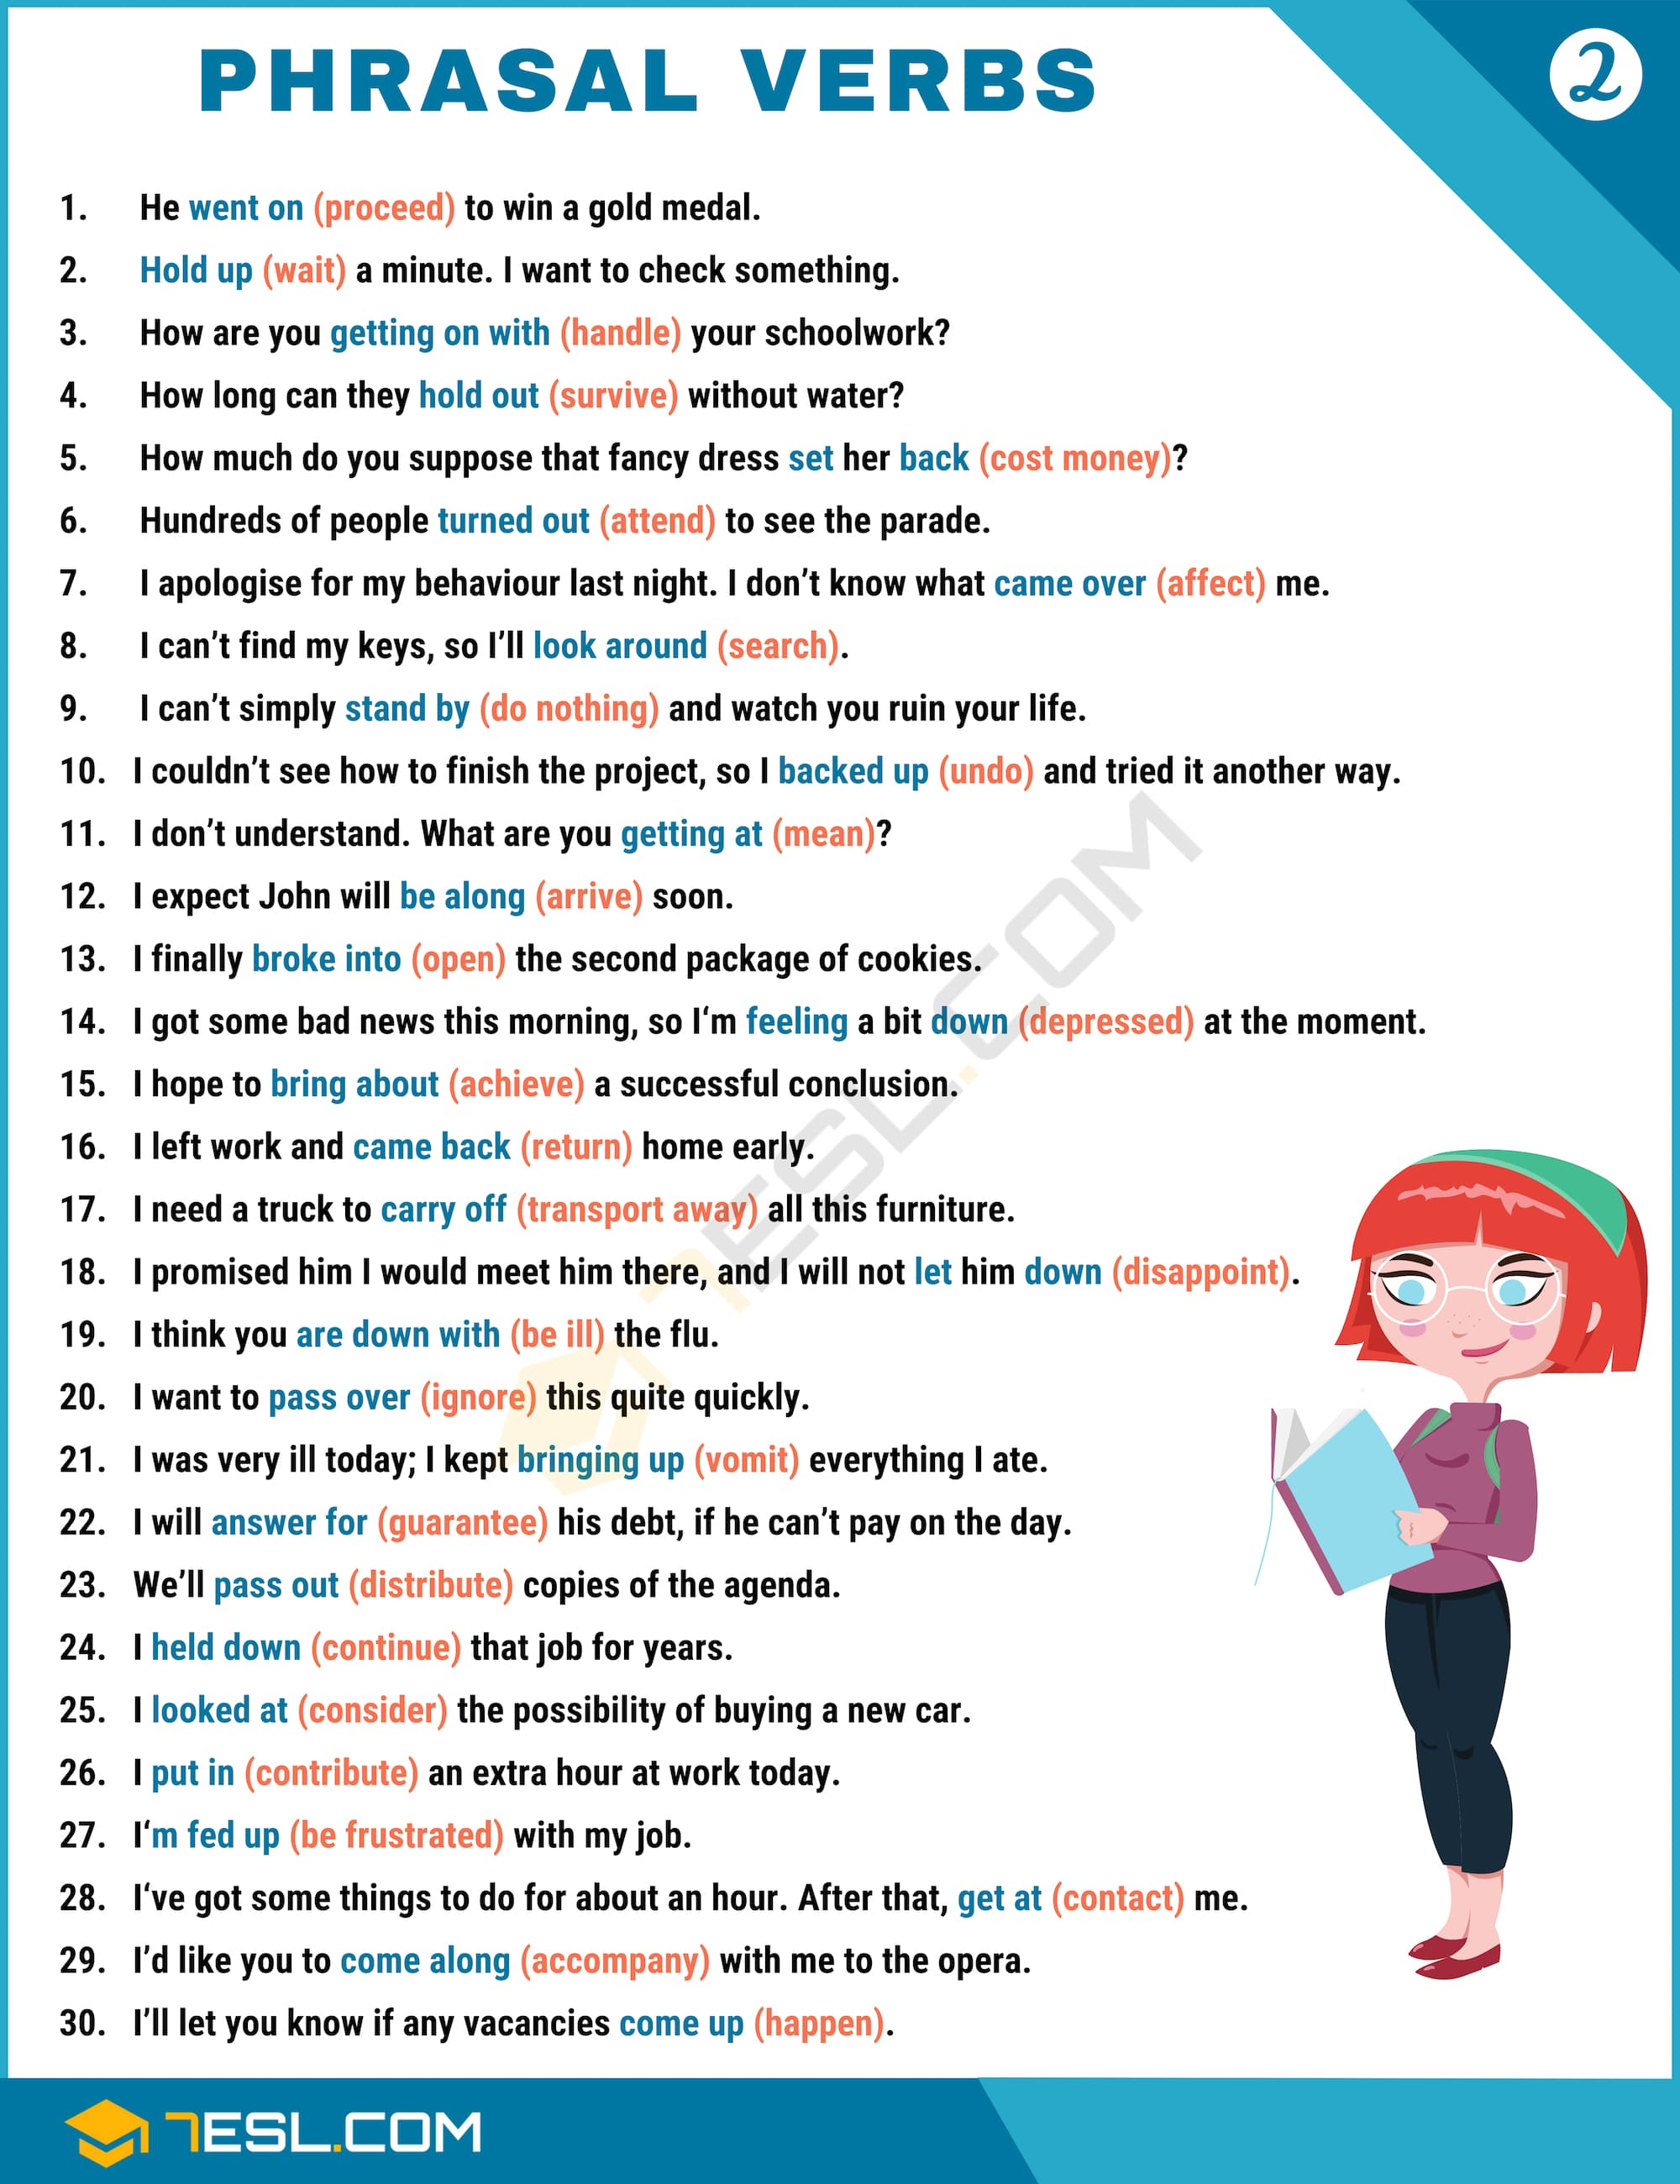 Phrasal Verbs Examples - Image 1